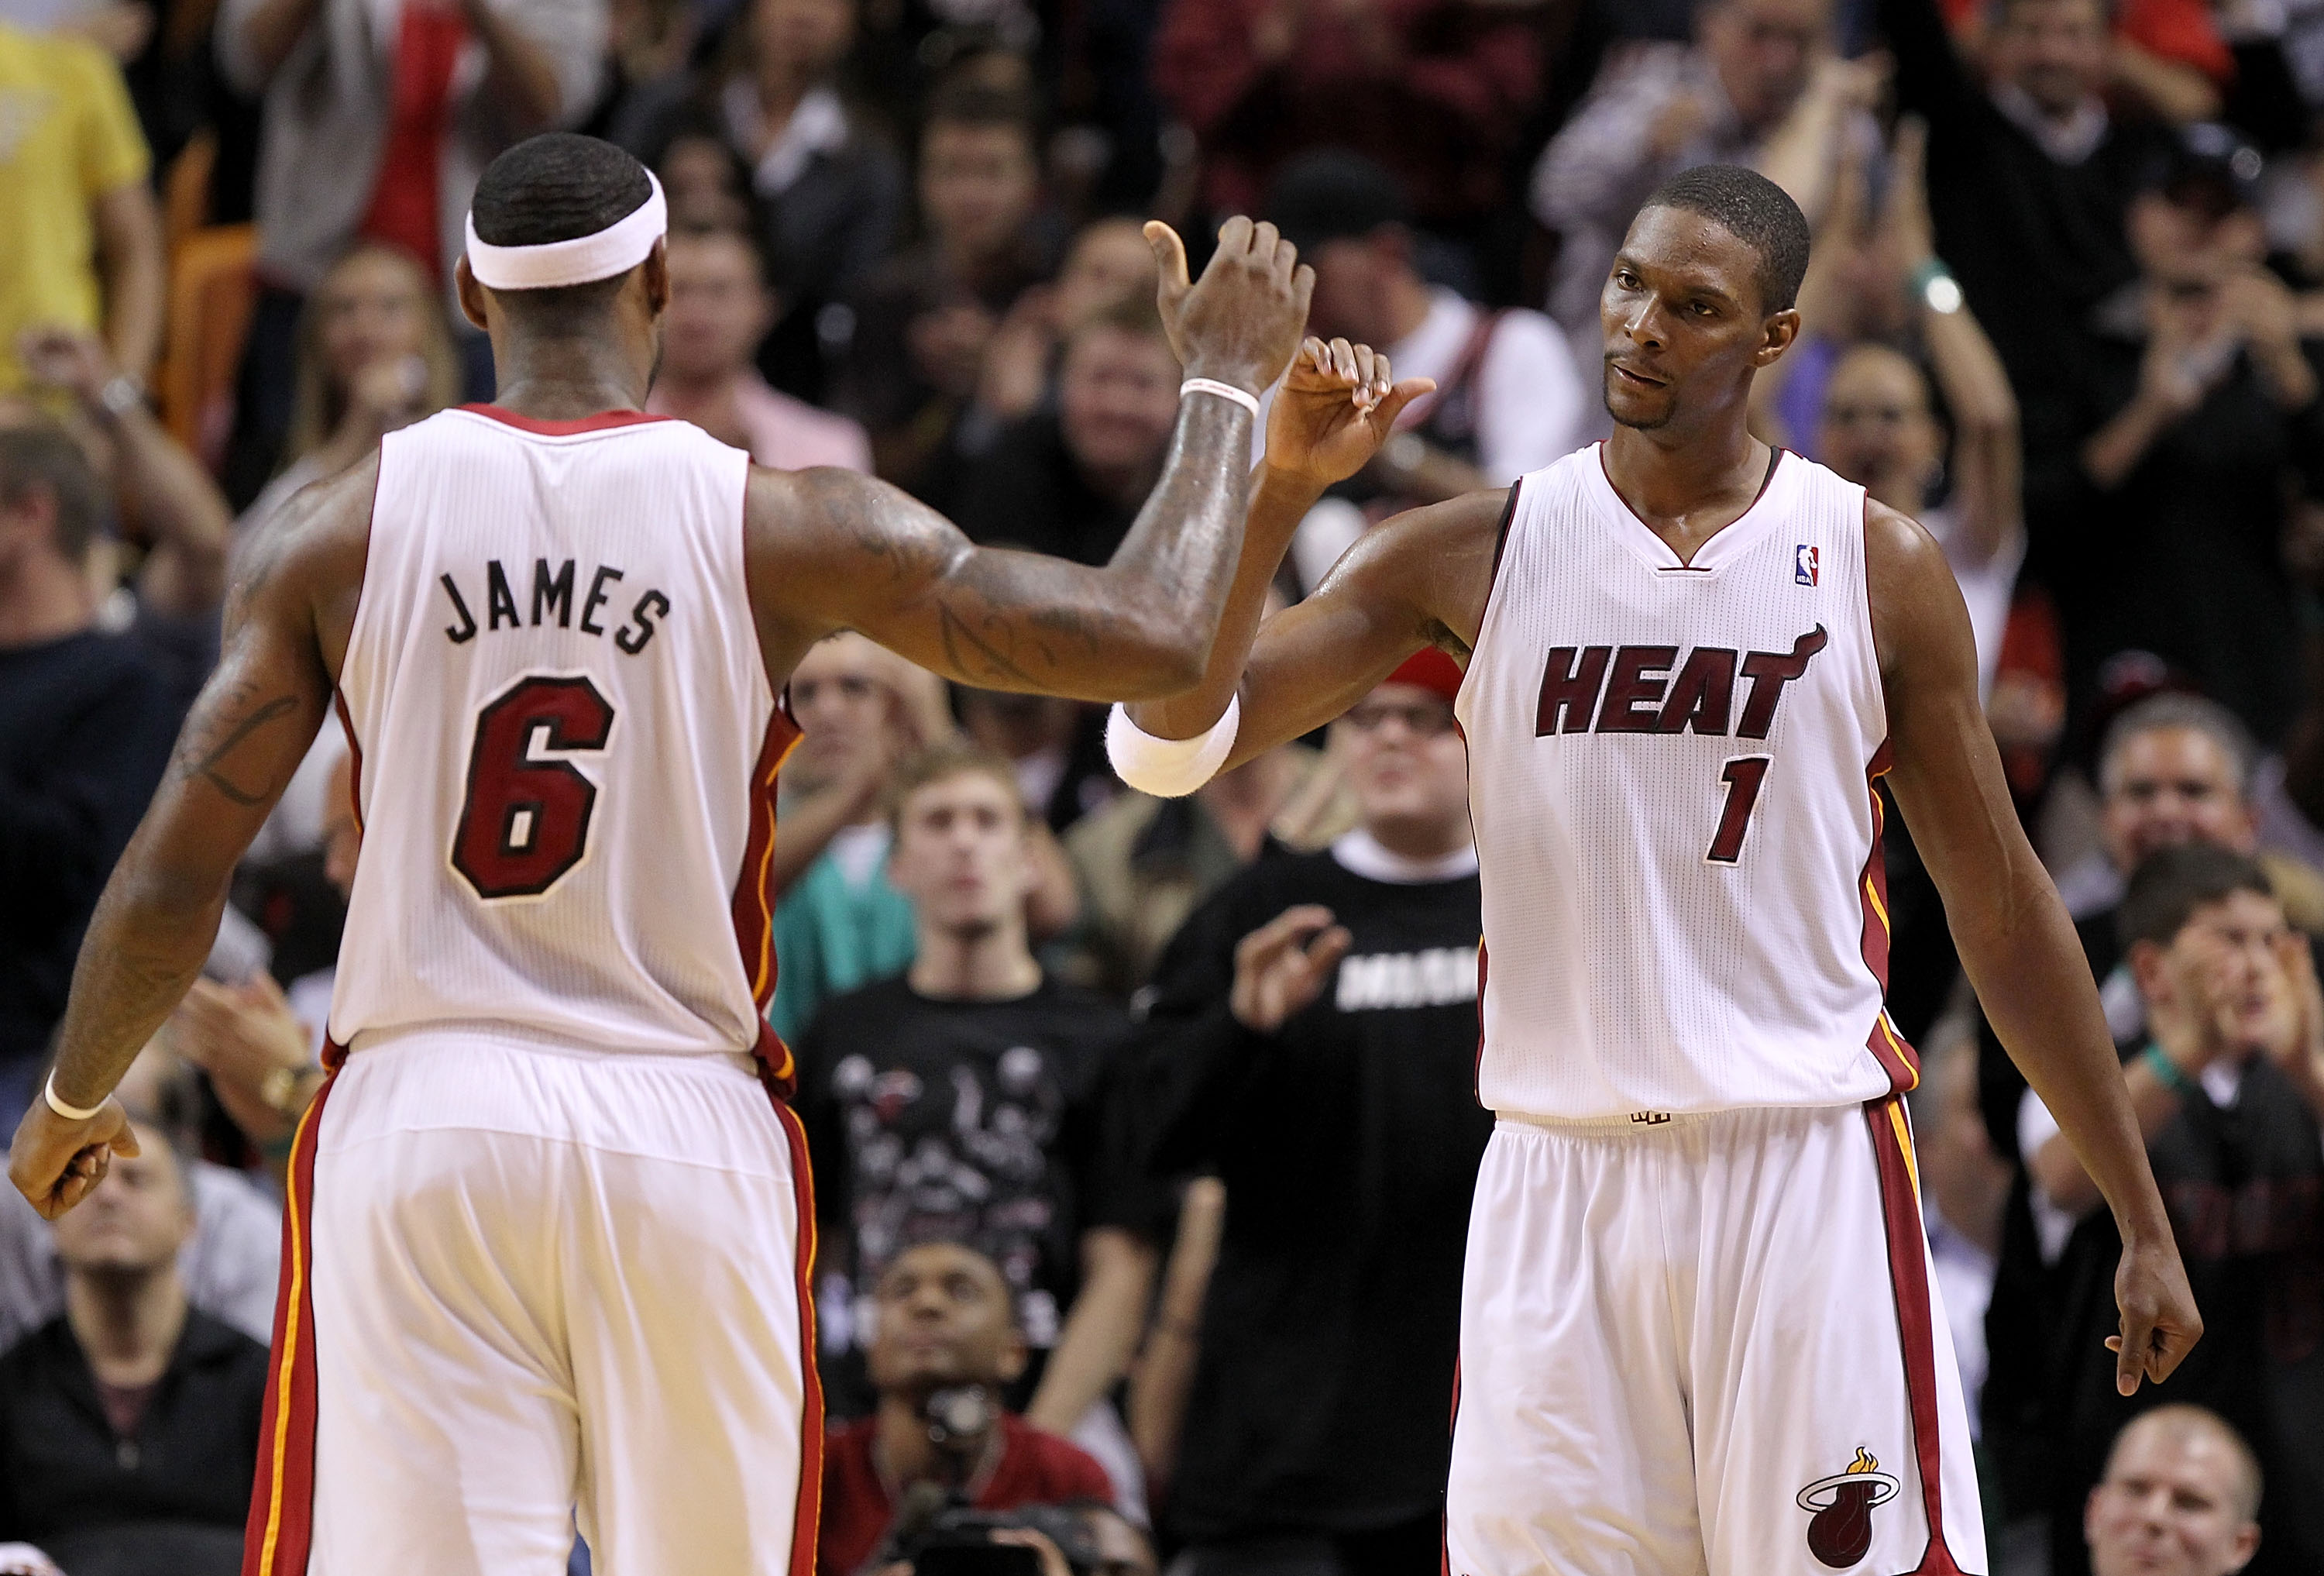 MIAMI, FL - DECEMBER 20: LeBron James #6 and Chris Bosh #1 of the Miami Heat high five during a game against the Dallas Mavericks at American Airlines Arena on December 20, 2010 in Miami, Florida. NOTE TO USER: User expressly acknowledges and agrees that,